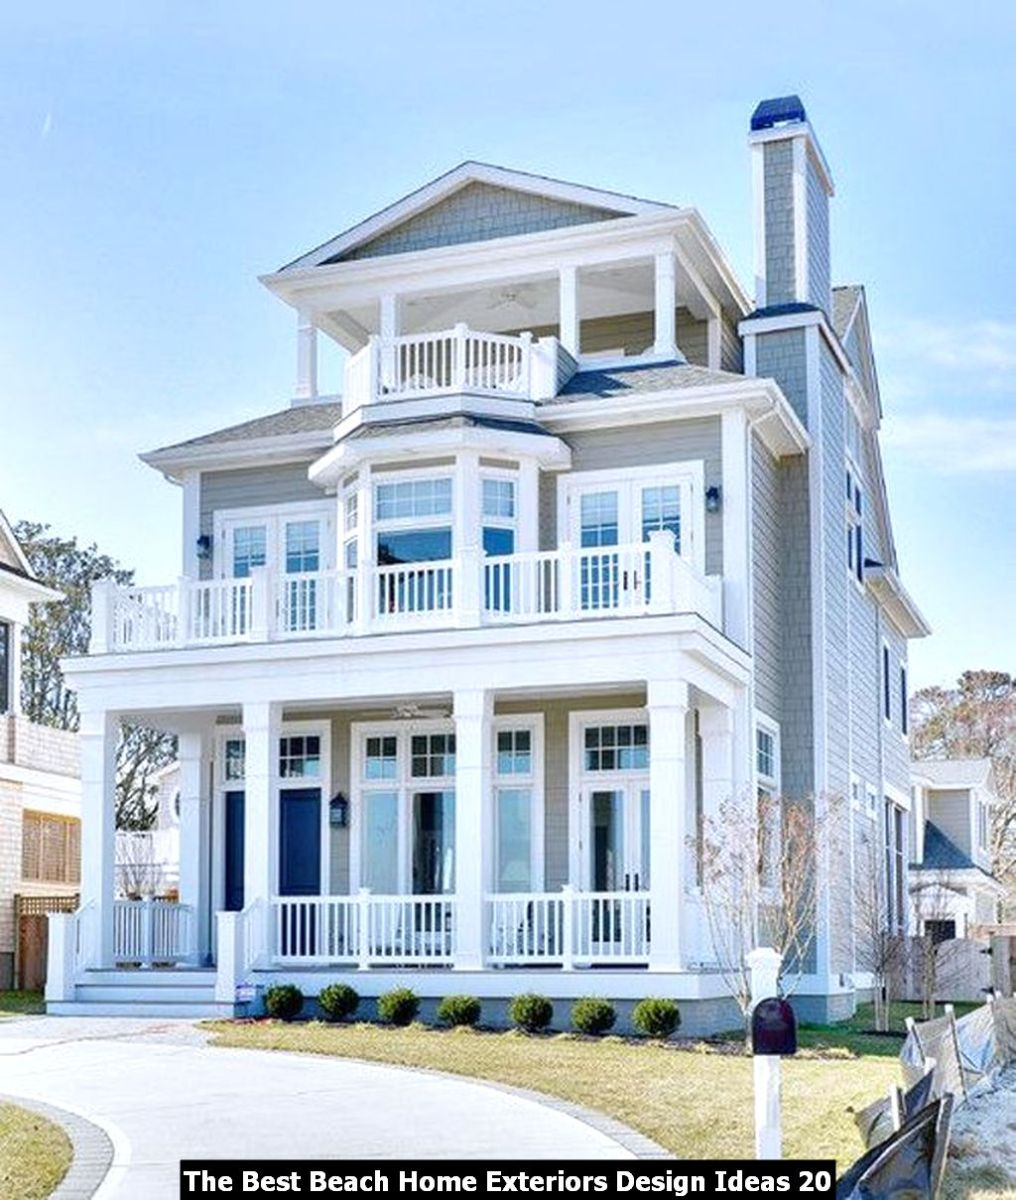 The Best Beach Home Exteriors Design Ideas 20